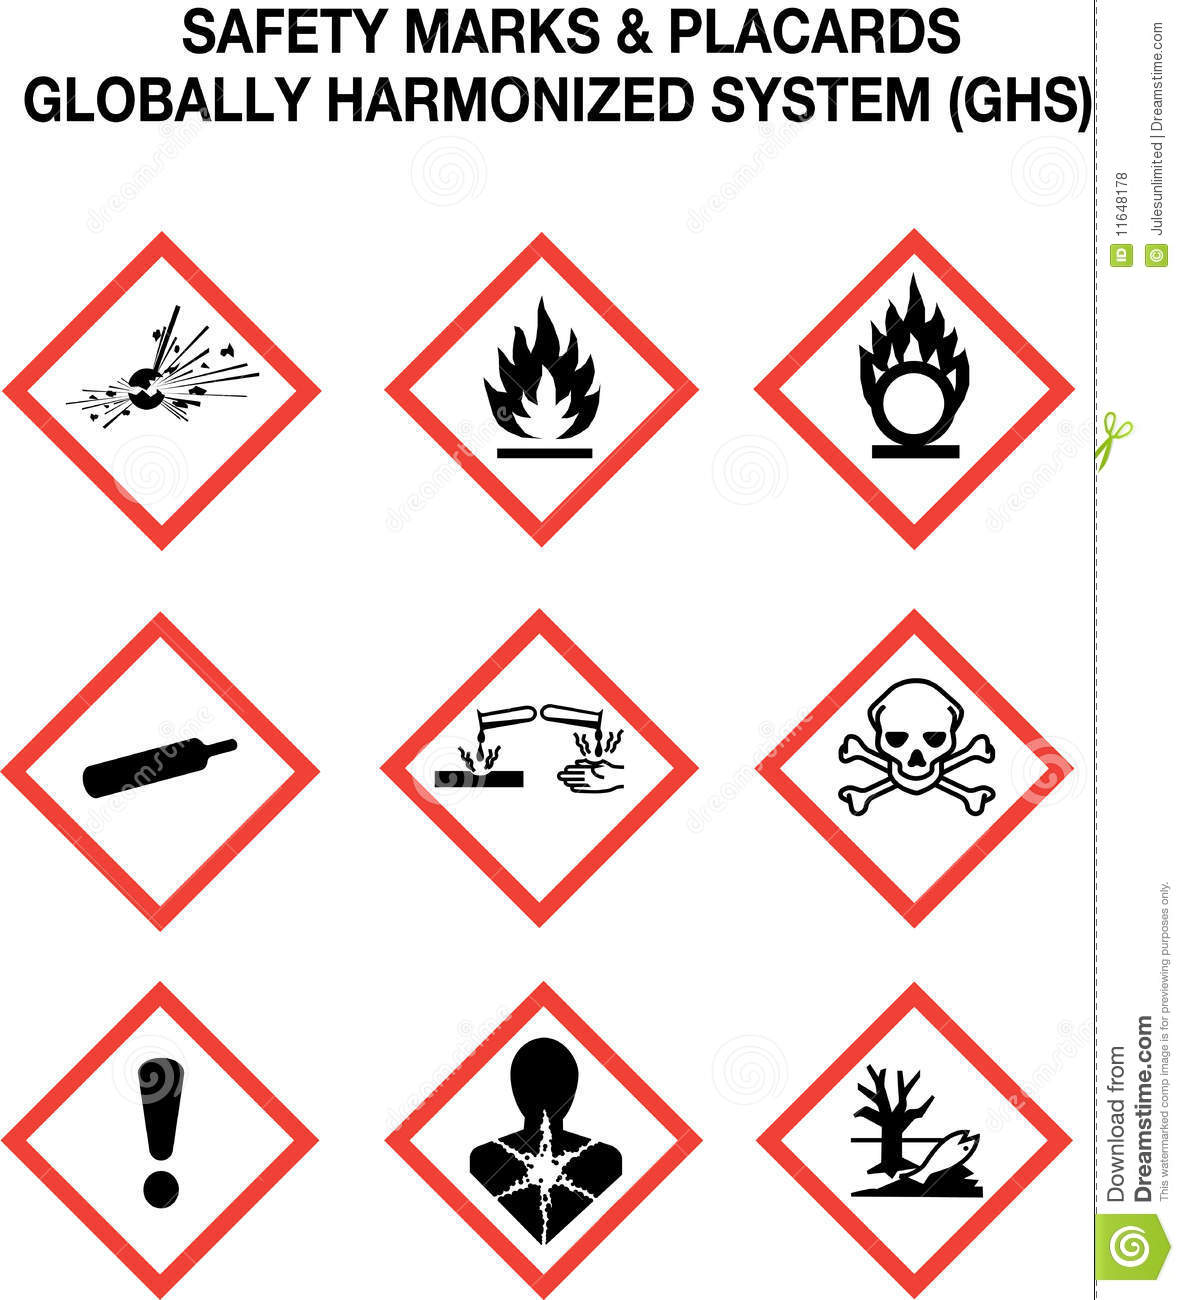 The 9 Warning Signs According To The Globally Harmonized System For